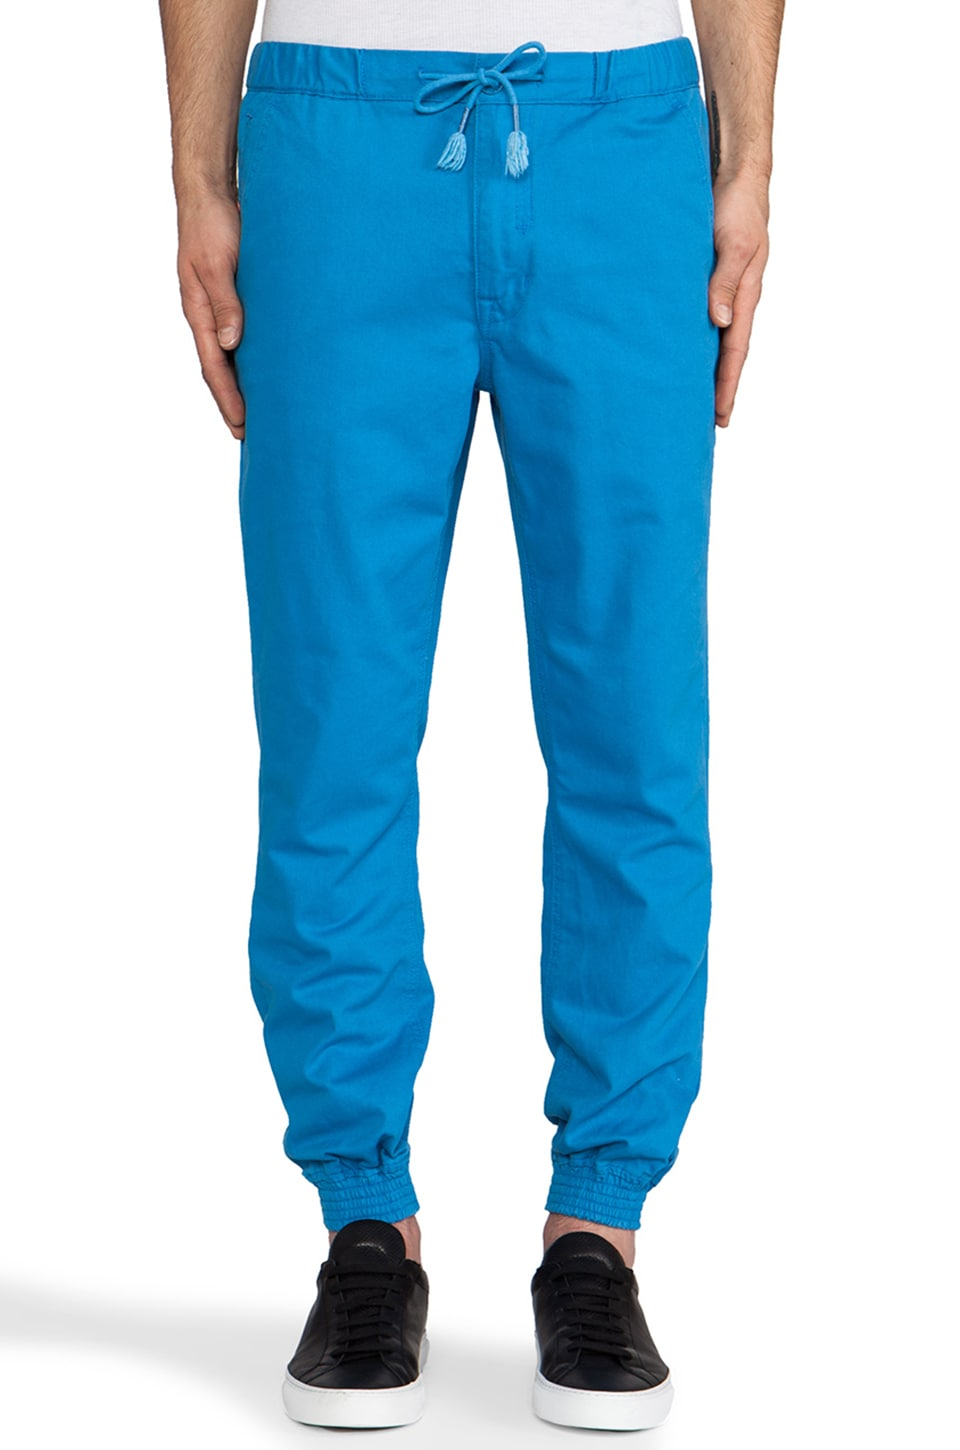 Staple Vito Cuff Pant in Blue